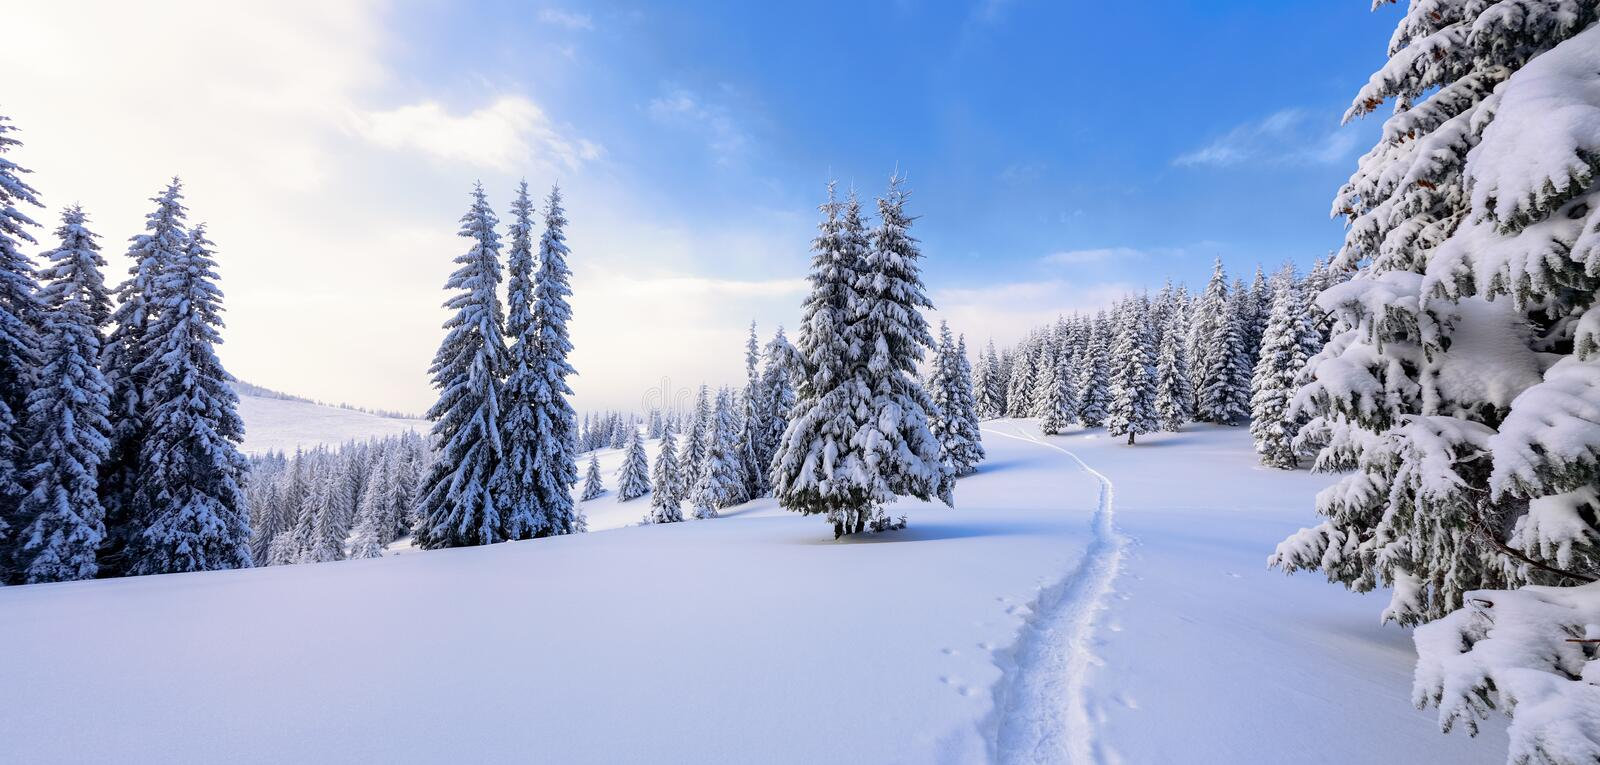 Winter landscape with fair trees under the snow. Scenery for the tourists. Christmas holidays. royalty free stock photos